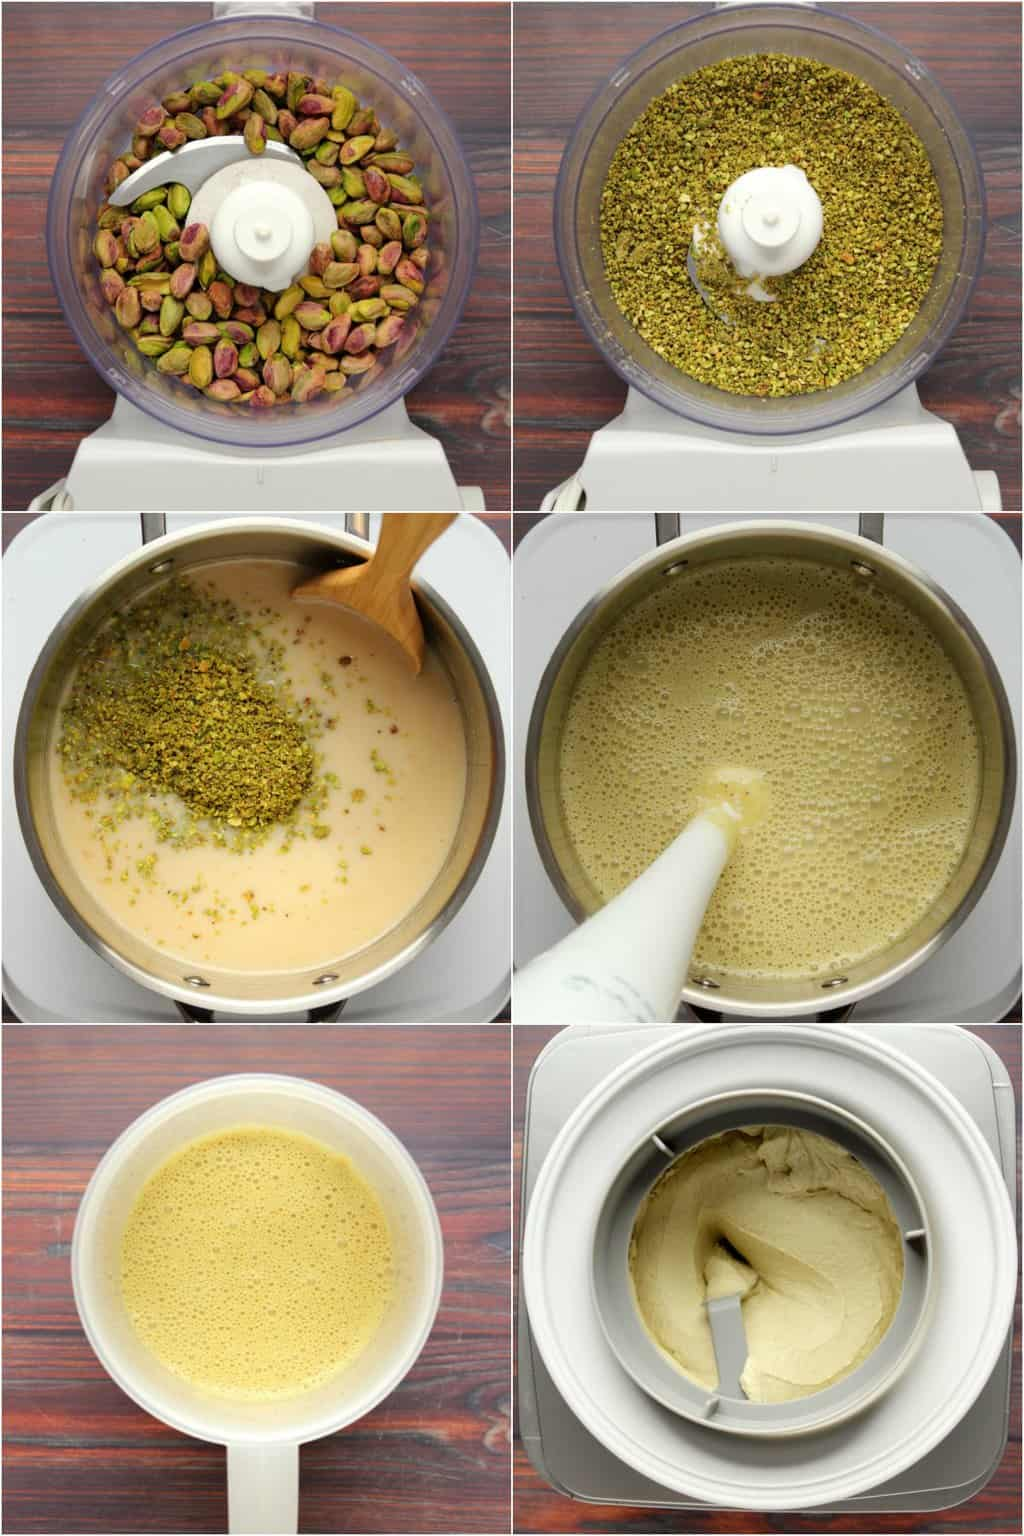 Step by step process photo collage of making vegan pistachio ice cream.